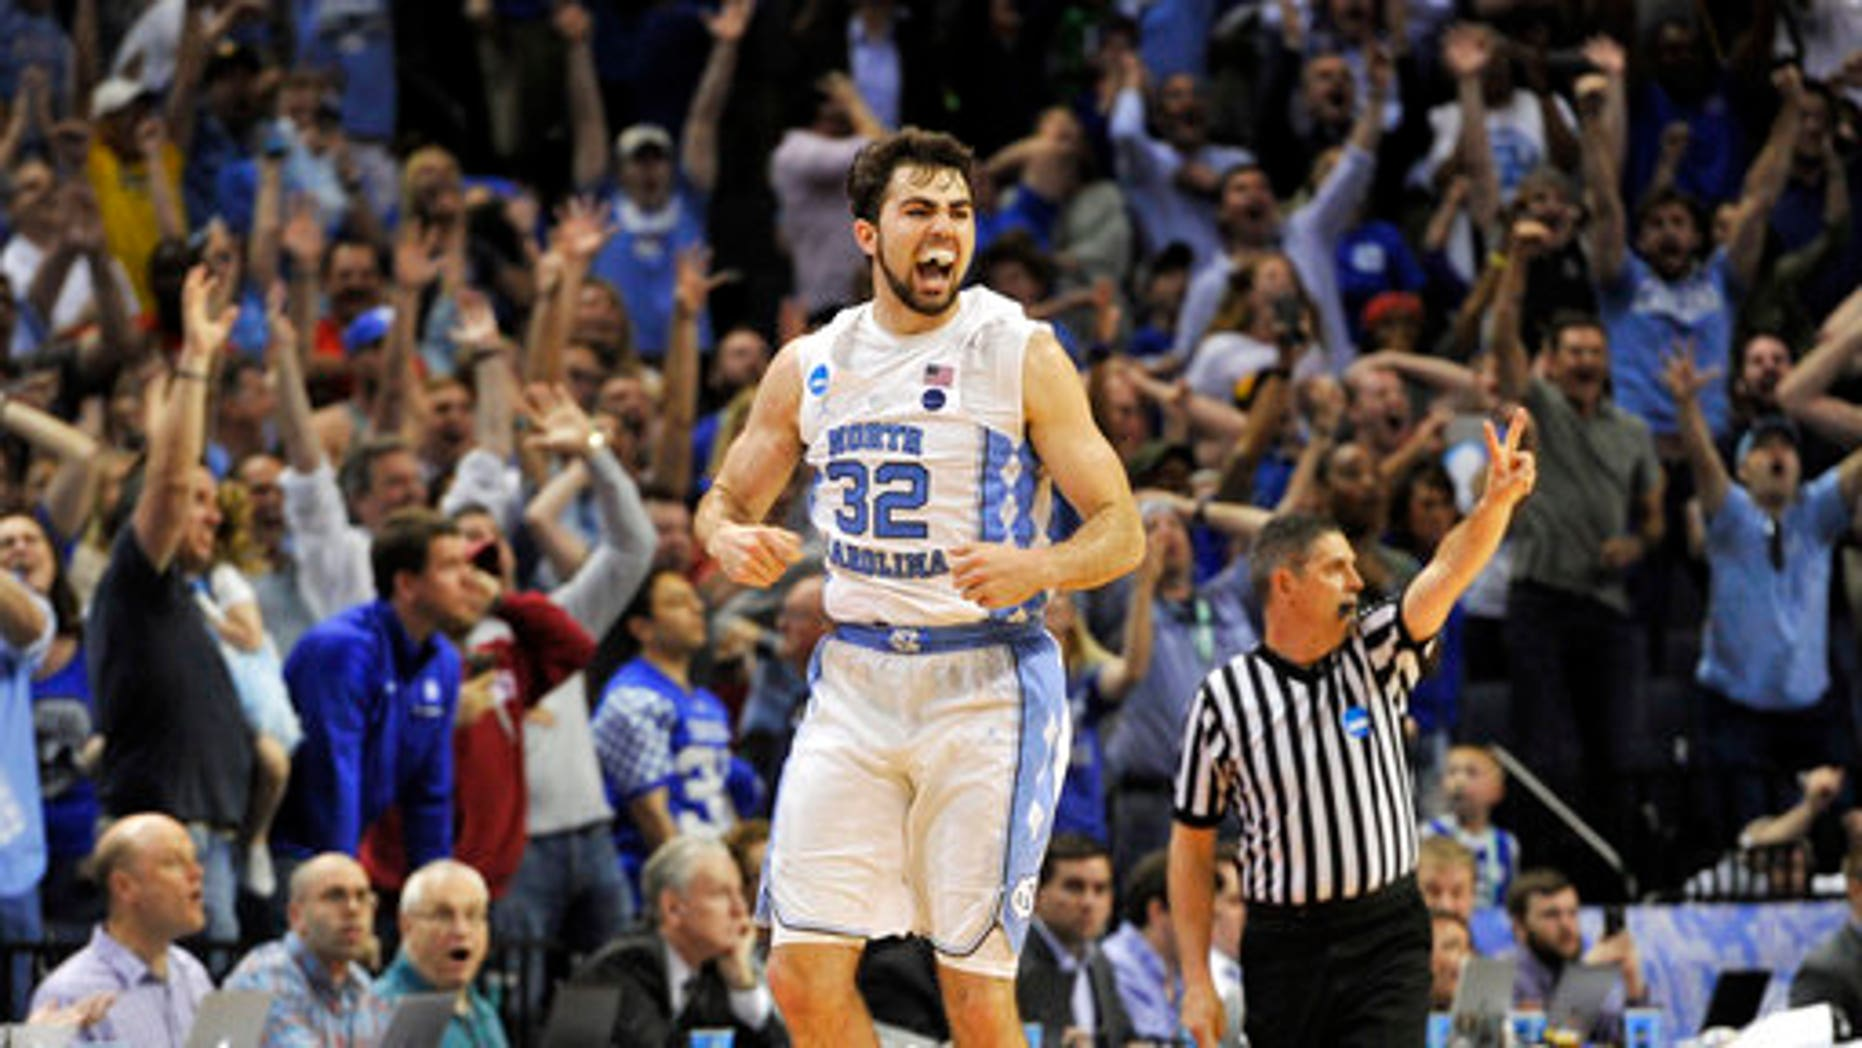 North Carolina forward Luke Maye celebrating the win.